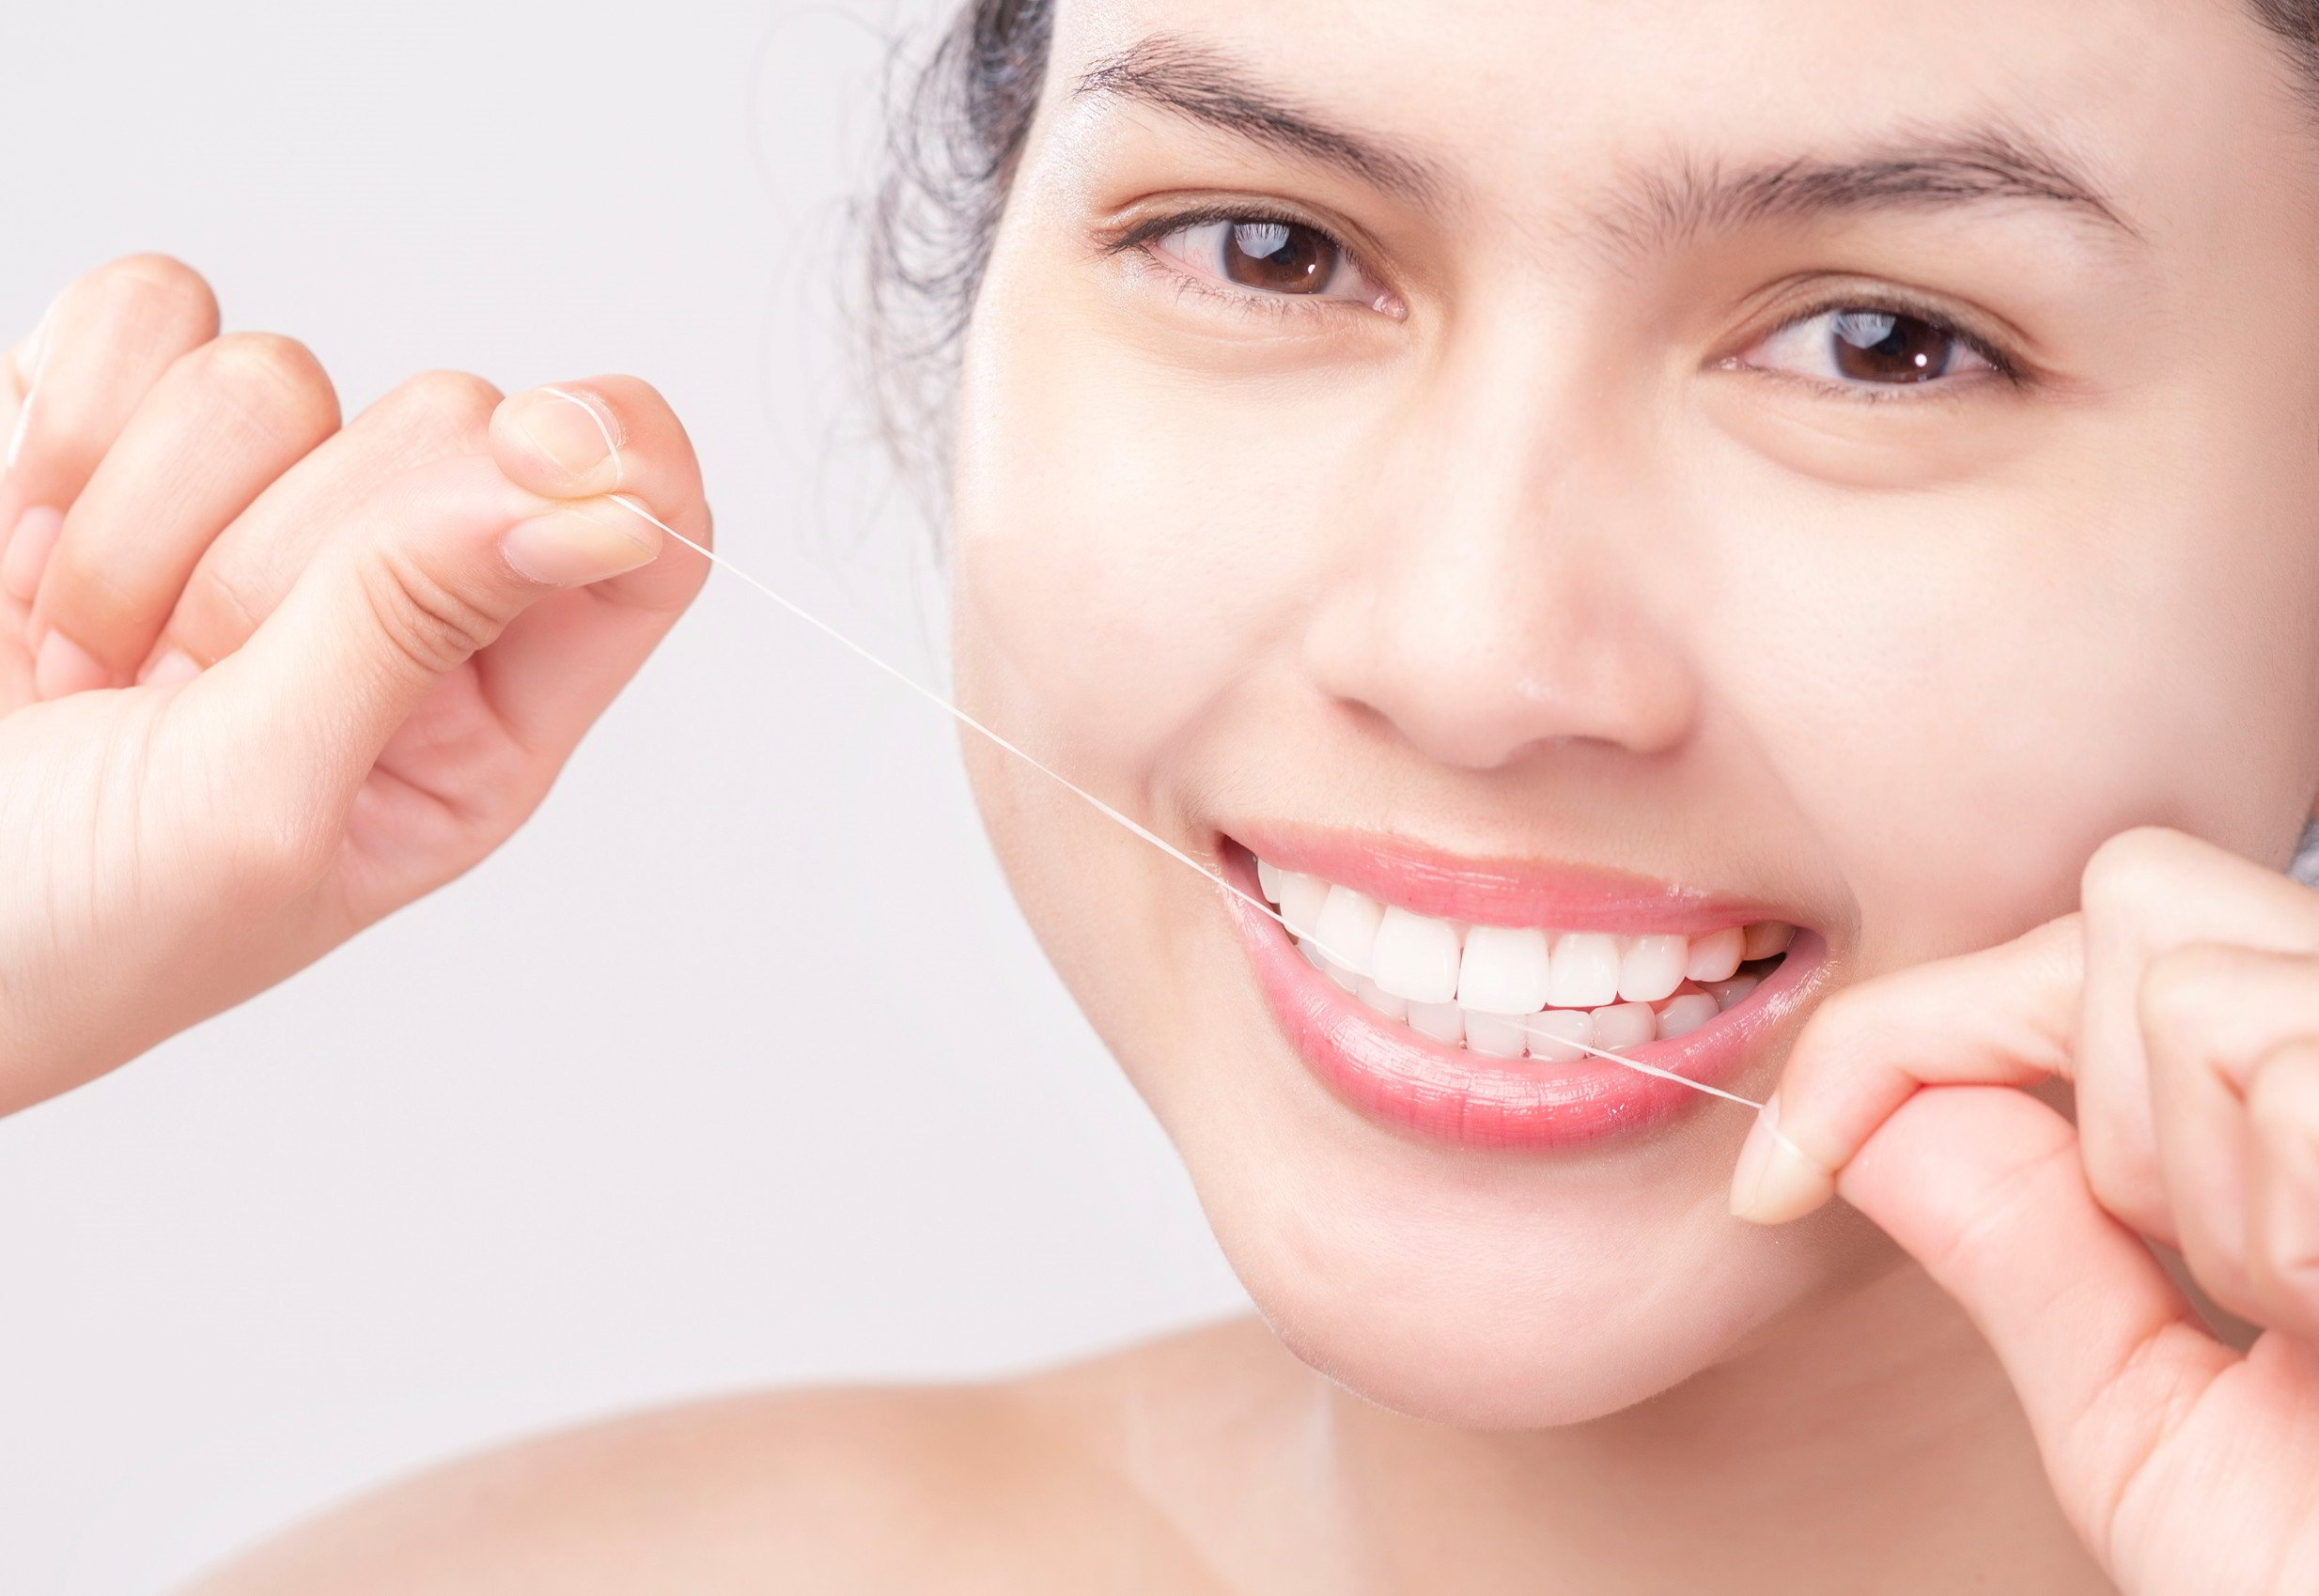 Flossing: How to Do it Daily